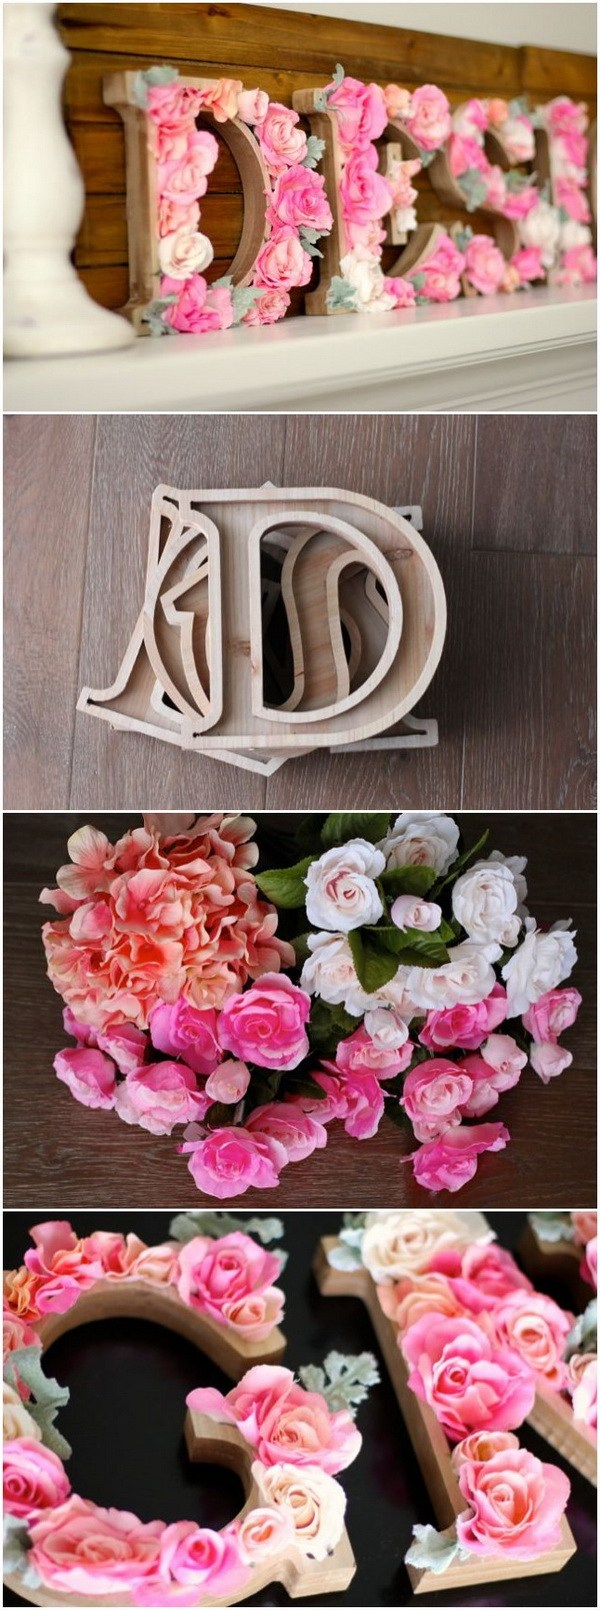 40+ Rustic Wall Decorations For Adding Warmth To Your Home For Floral Wreath Wood Framed Wall Decor (View 19 of 30)